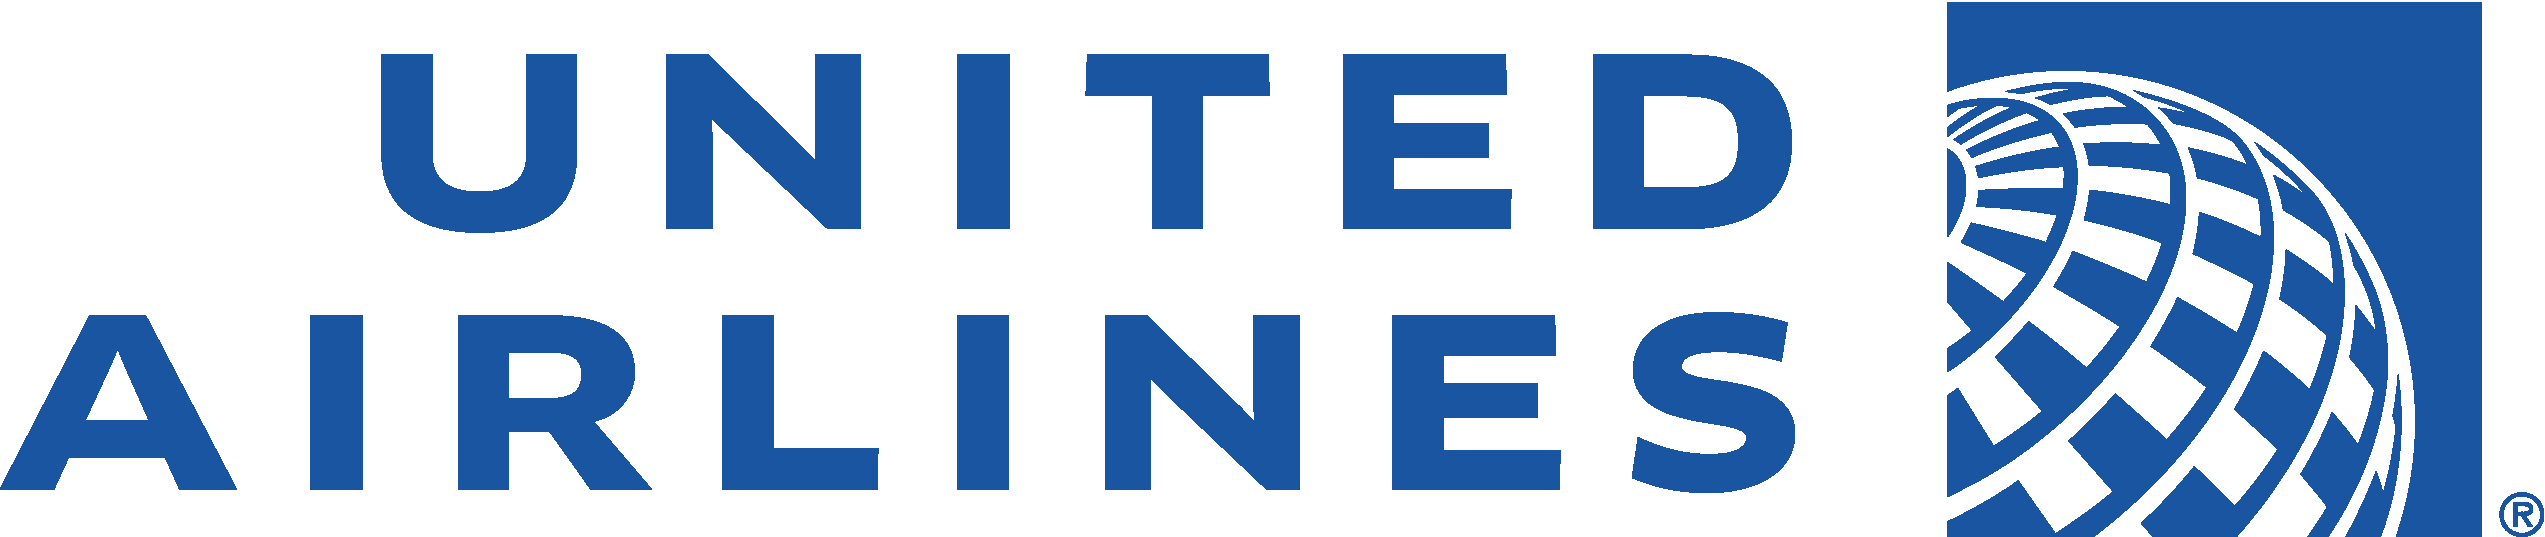 United Airlines Logo - Pluspng - United Airlines Logo PNG